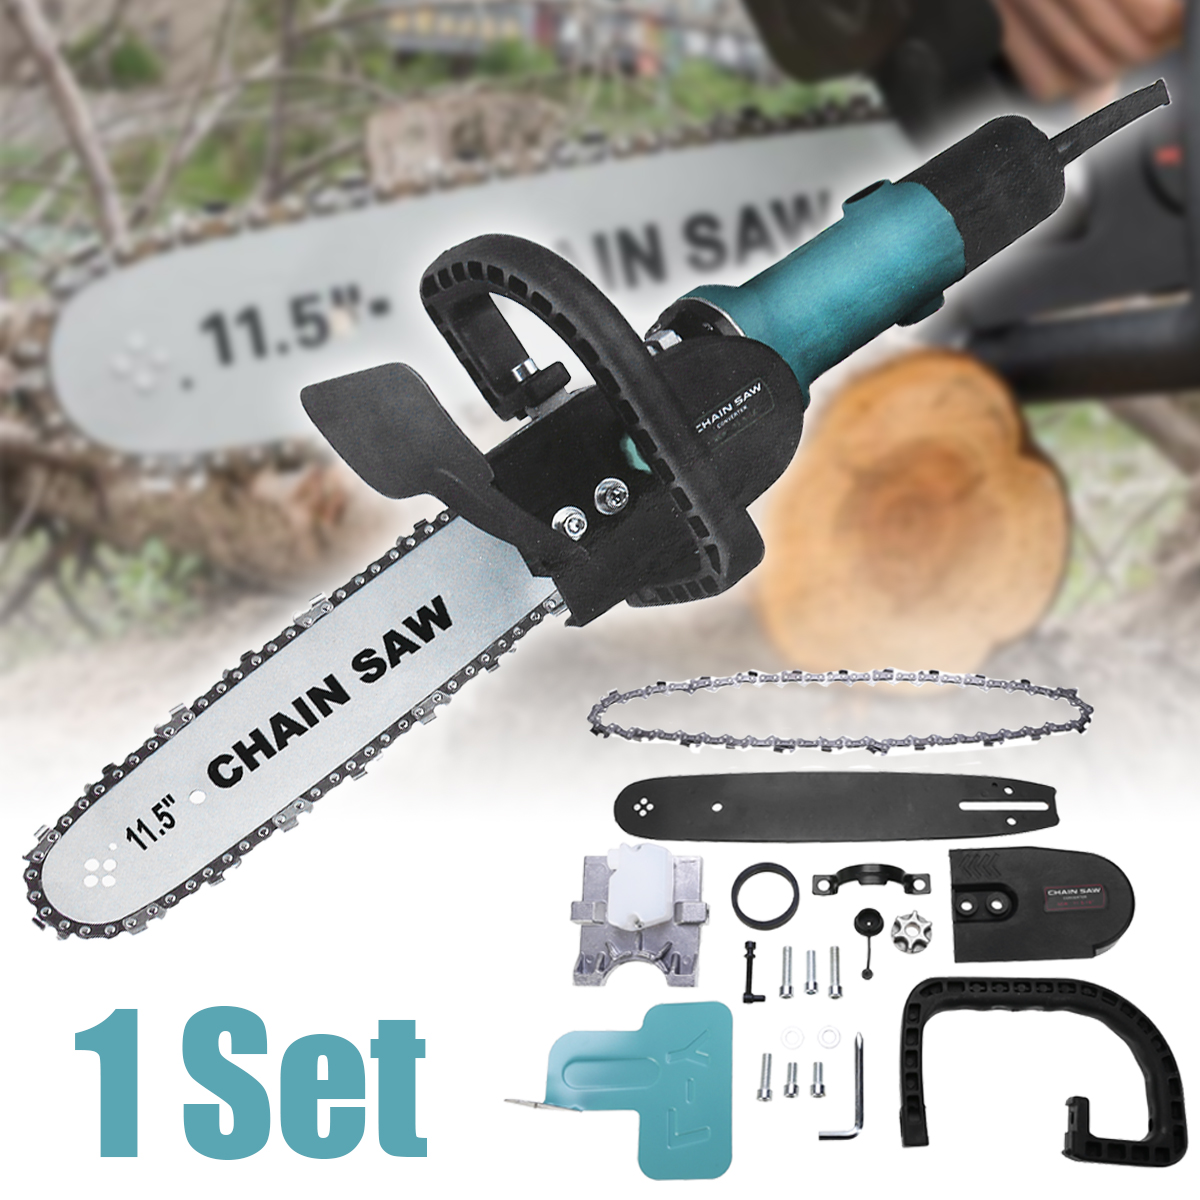 Multifunction Portable Logging Chain Saw Adjustable Hand-held Chainsaw Electric Angle Grinder For Garden Woodworking Power ToolsMultifunction Portable Logging Chain Saw Adjustable Hand-held Chainsaw Electric Angle Grinder For Garden Woodworking Power Tools